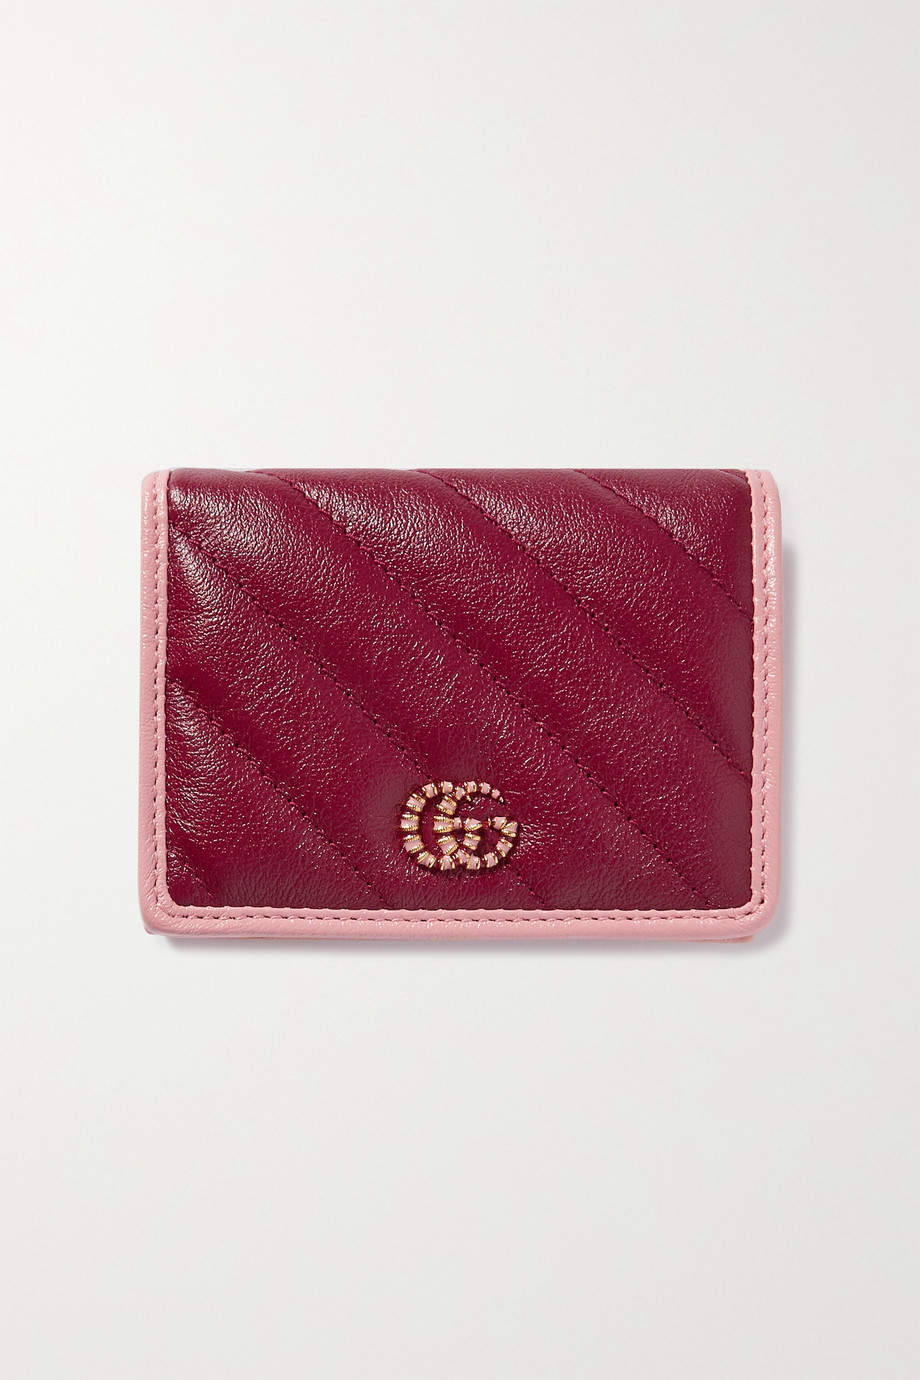 Gucci GG Marmont two-tone quilted textured-leather wallet